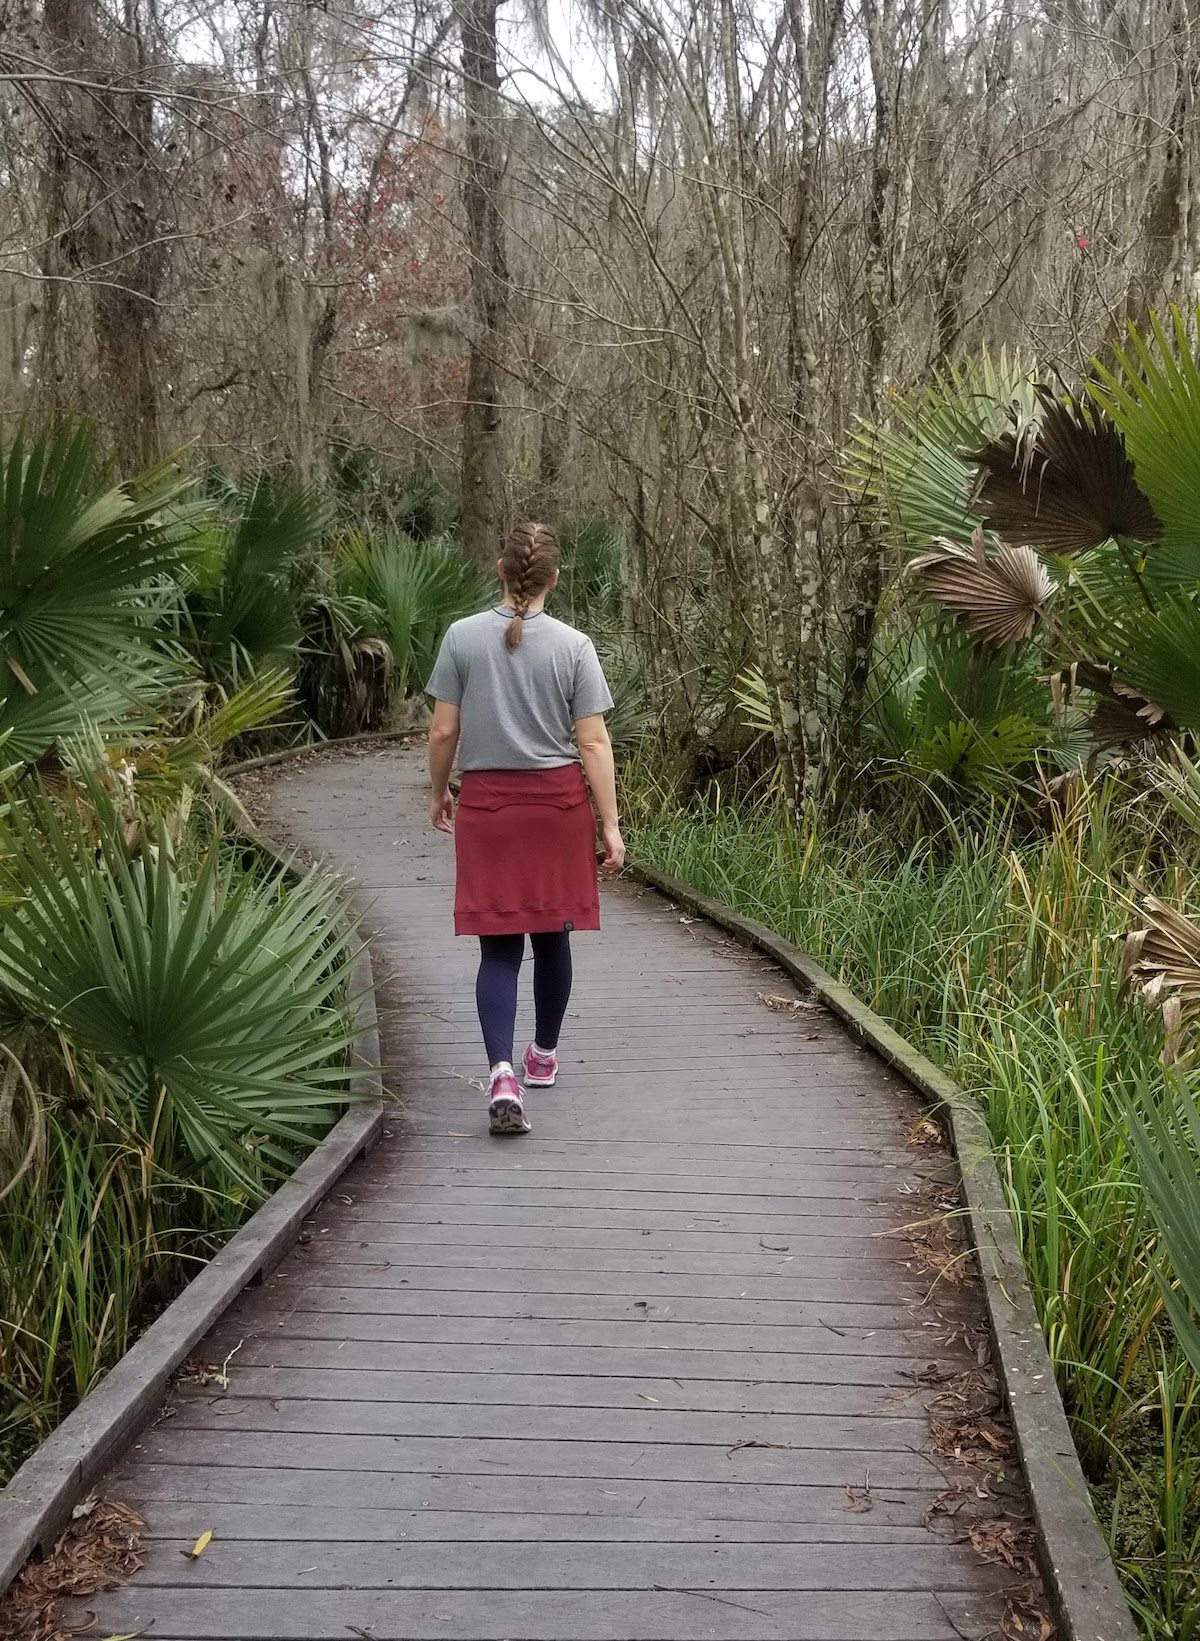 hiker walks along a boardwalk with palmettos on either side